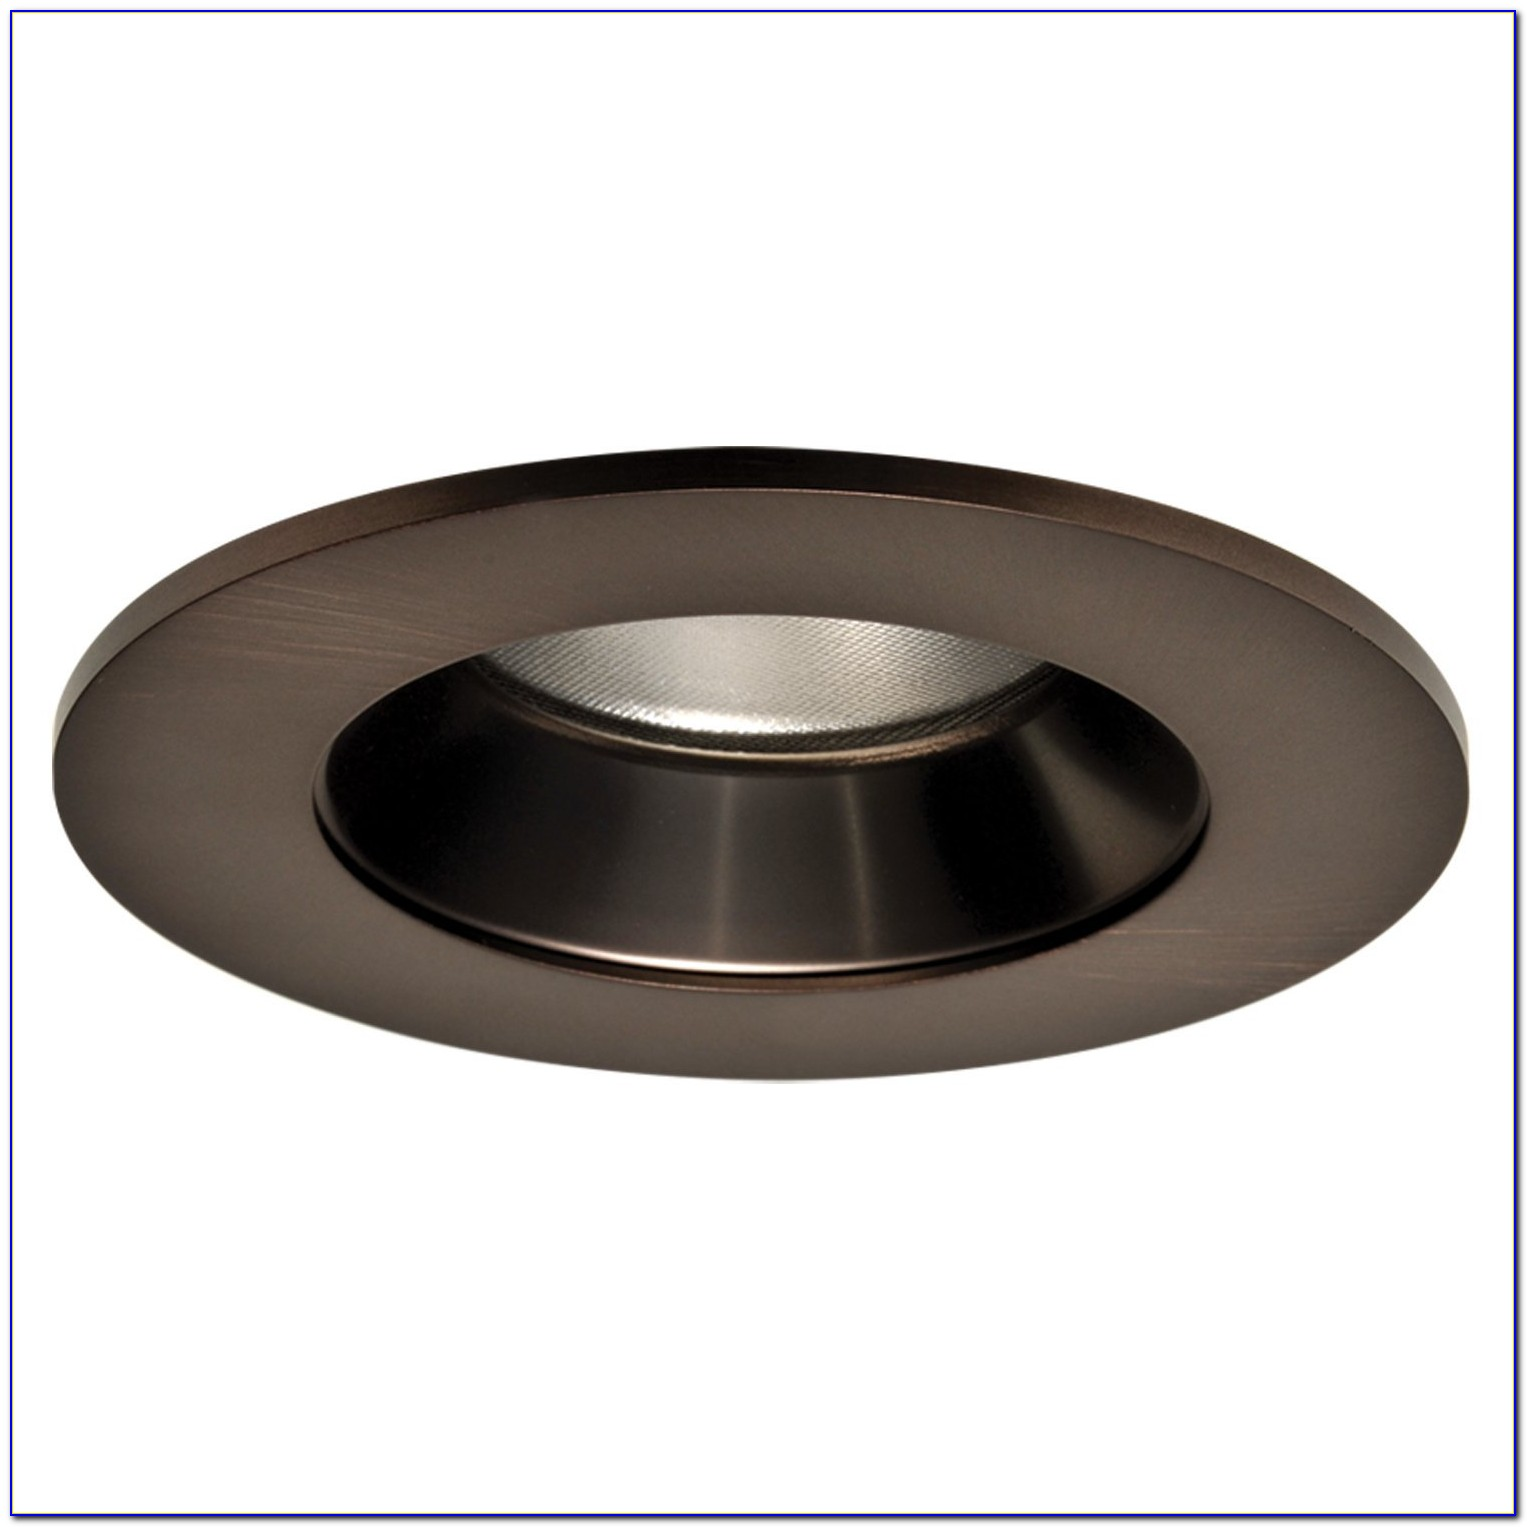 Juno Sloped Ceiling Recessed Lighting Trim